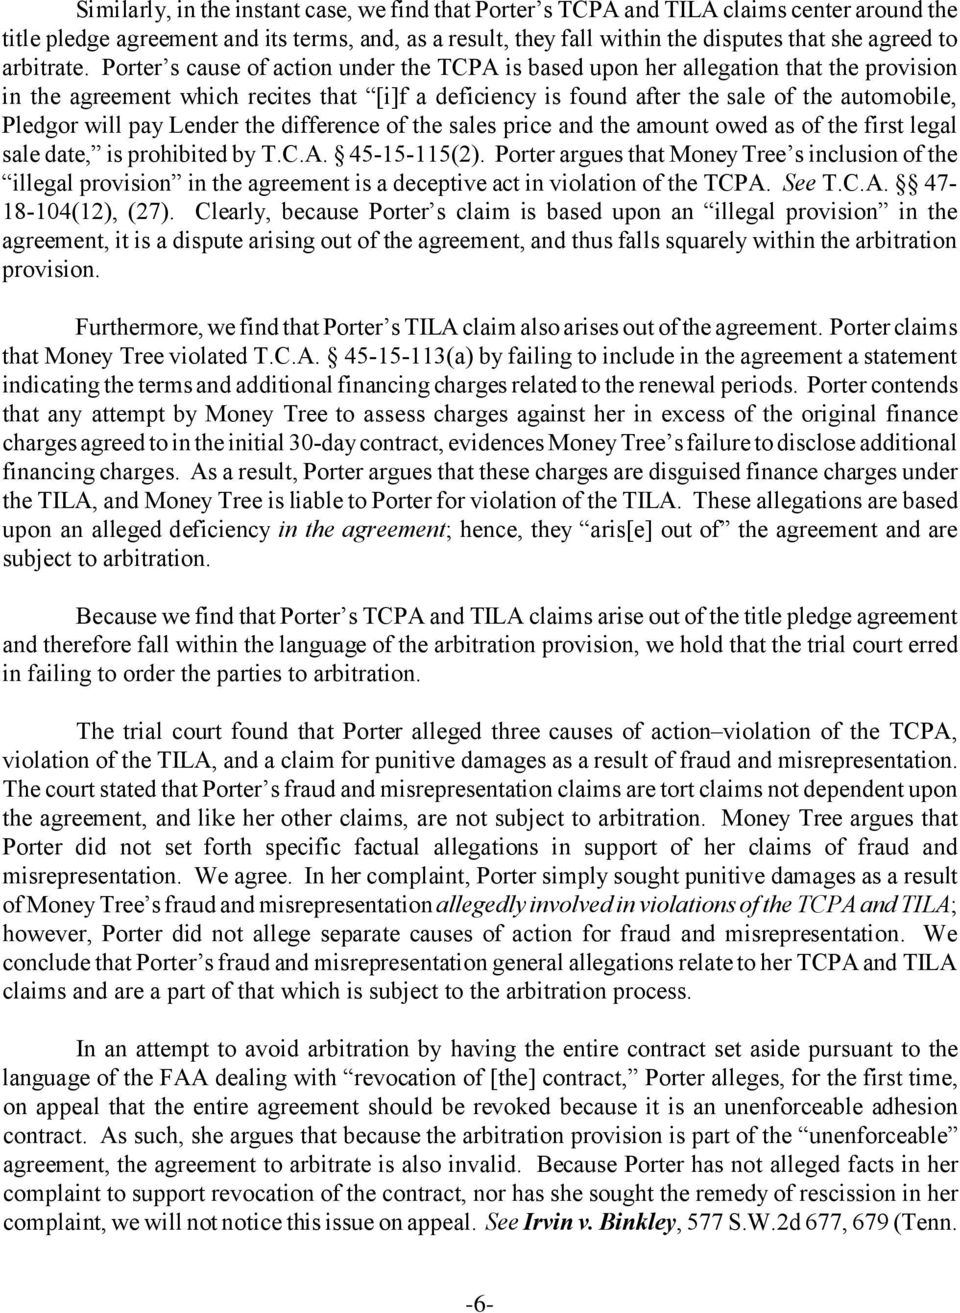 Porter s cause of action under the TCPA is based upon her allegation that the provision in the agreement which recites that [i]f a deficiency is found after the sale of the automobile, Pledgor will